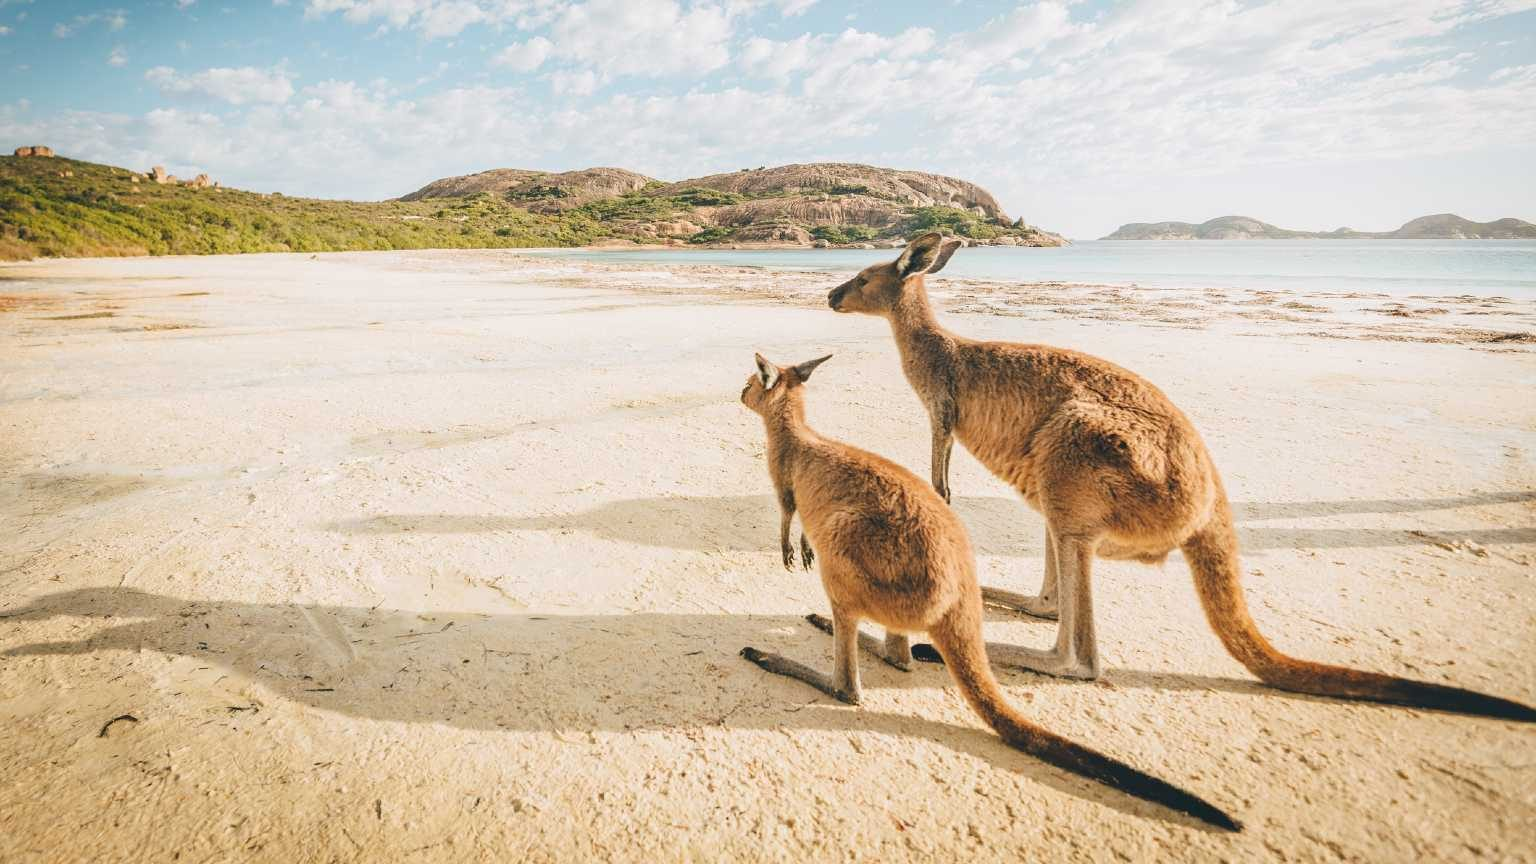 Pair of kangaroos on a beach looking into the distance.